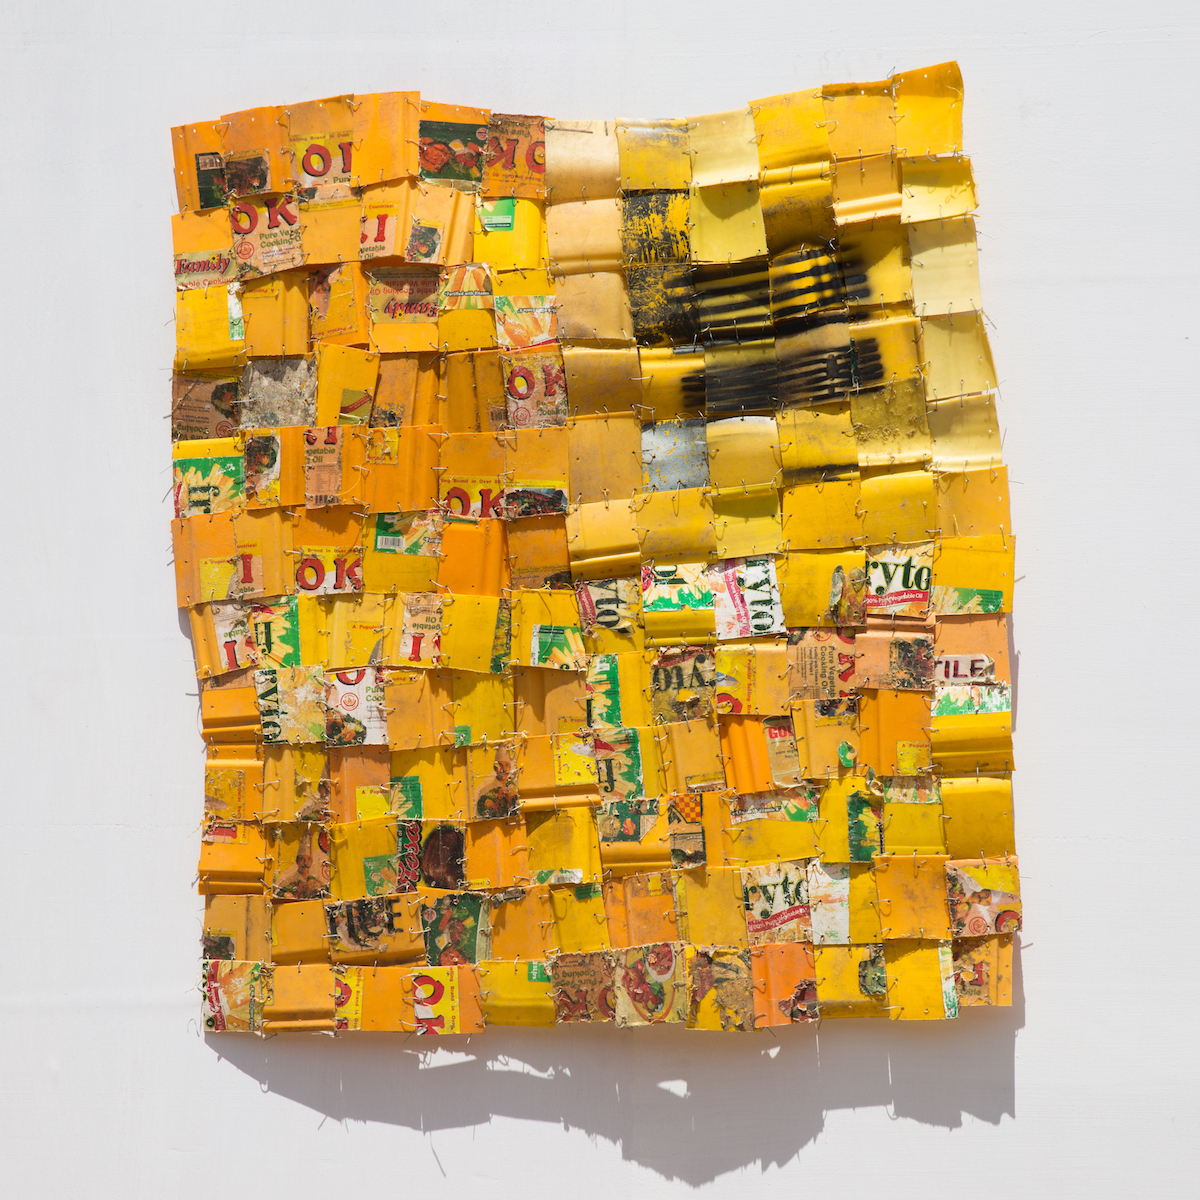 Serge Attukwei Clottey, Daily Dispatched 3, 2017, Plastic, wire and oil paint. Copyright the artist, courtesy Gallery 1957